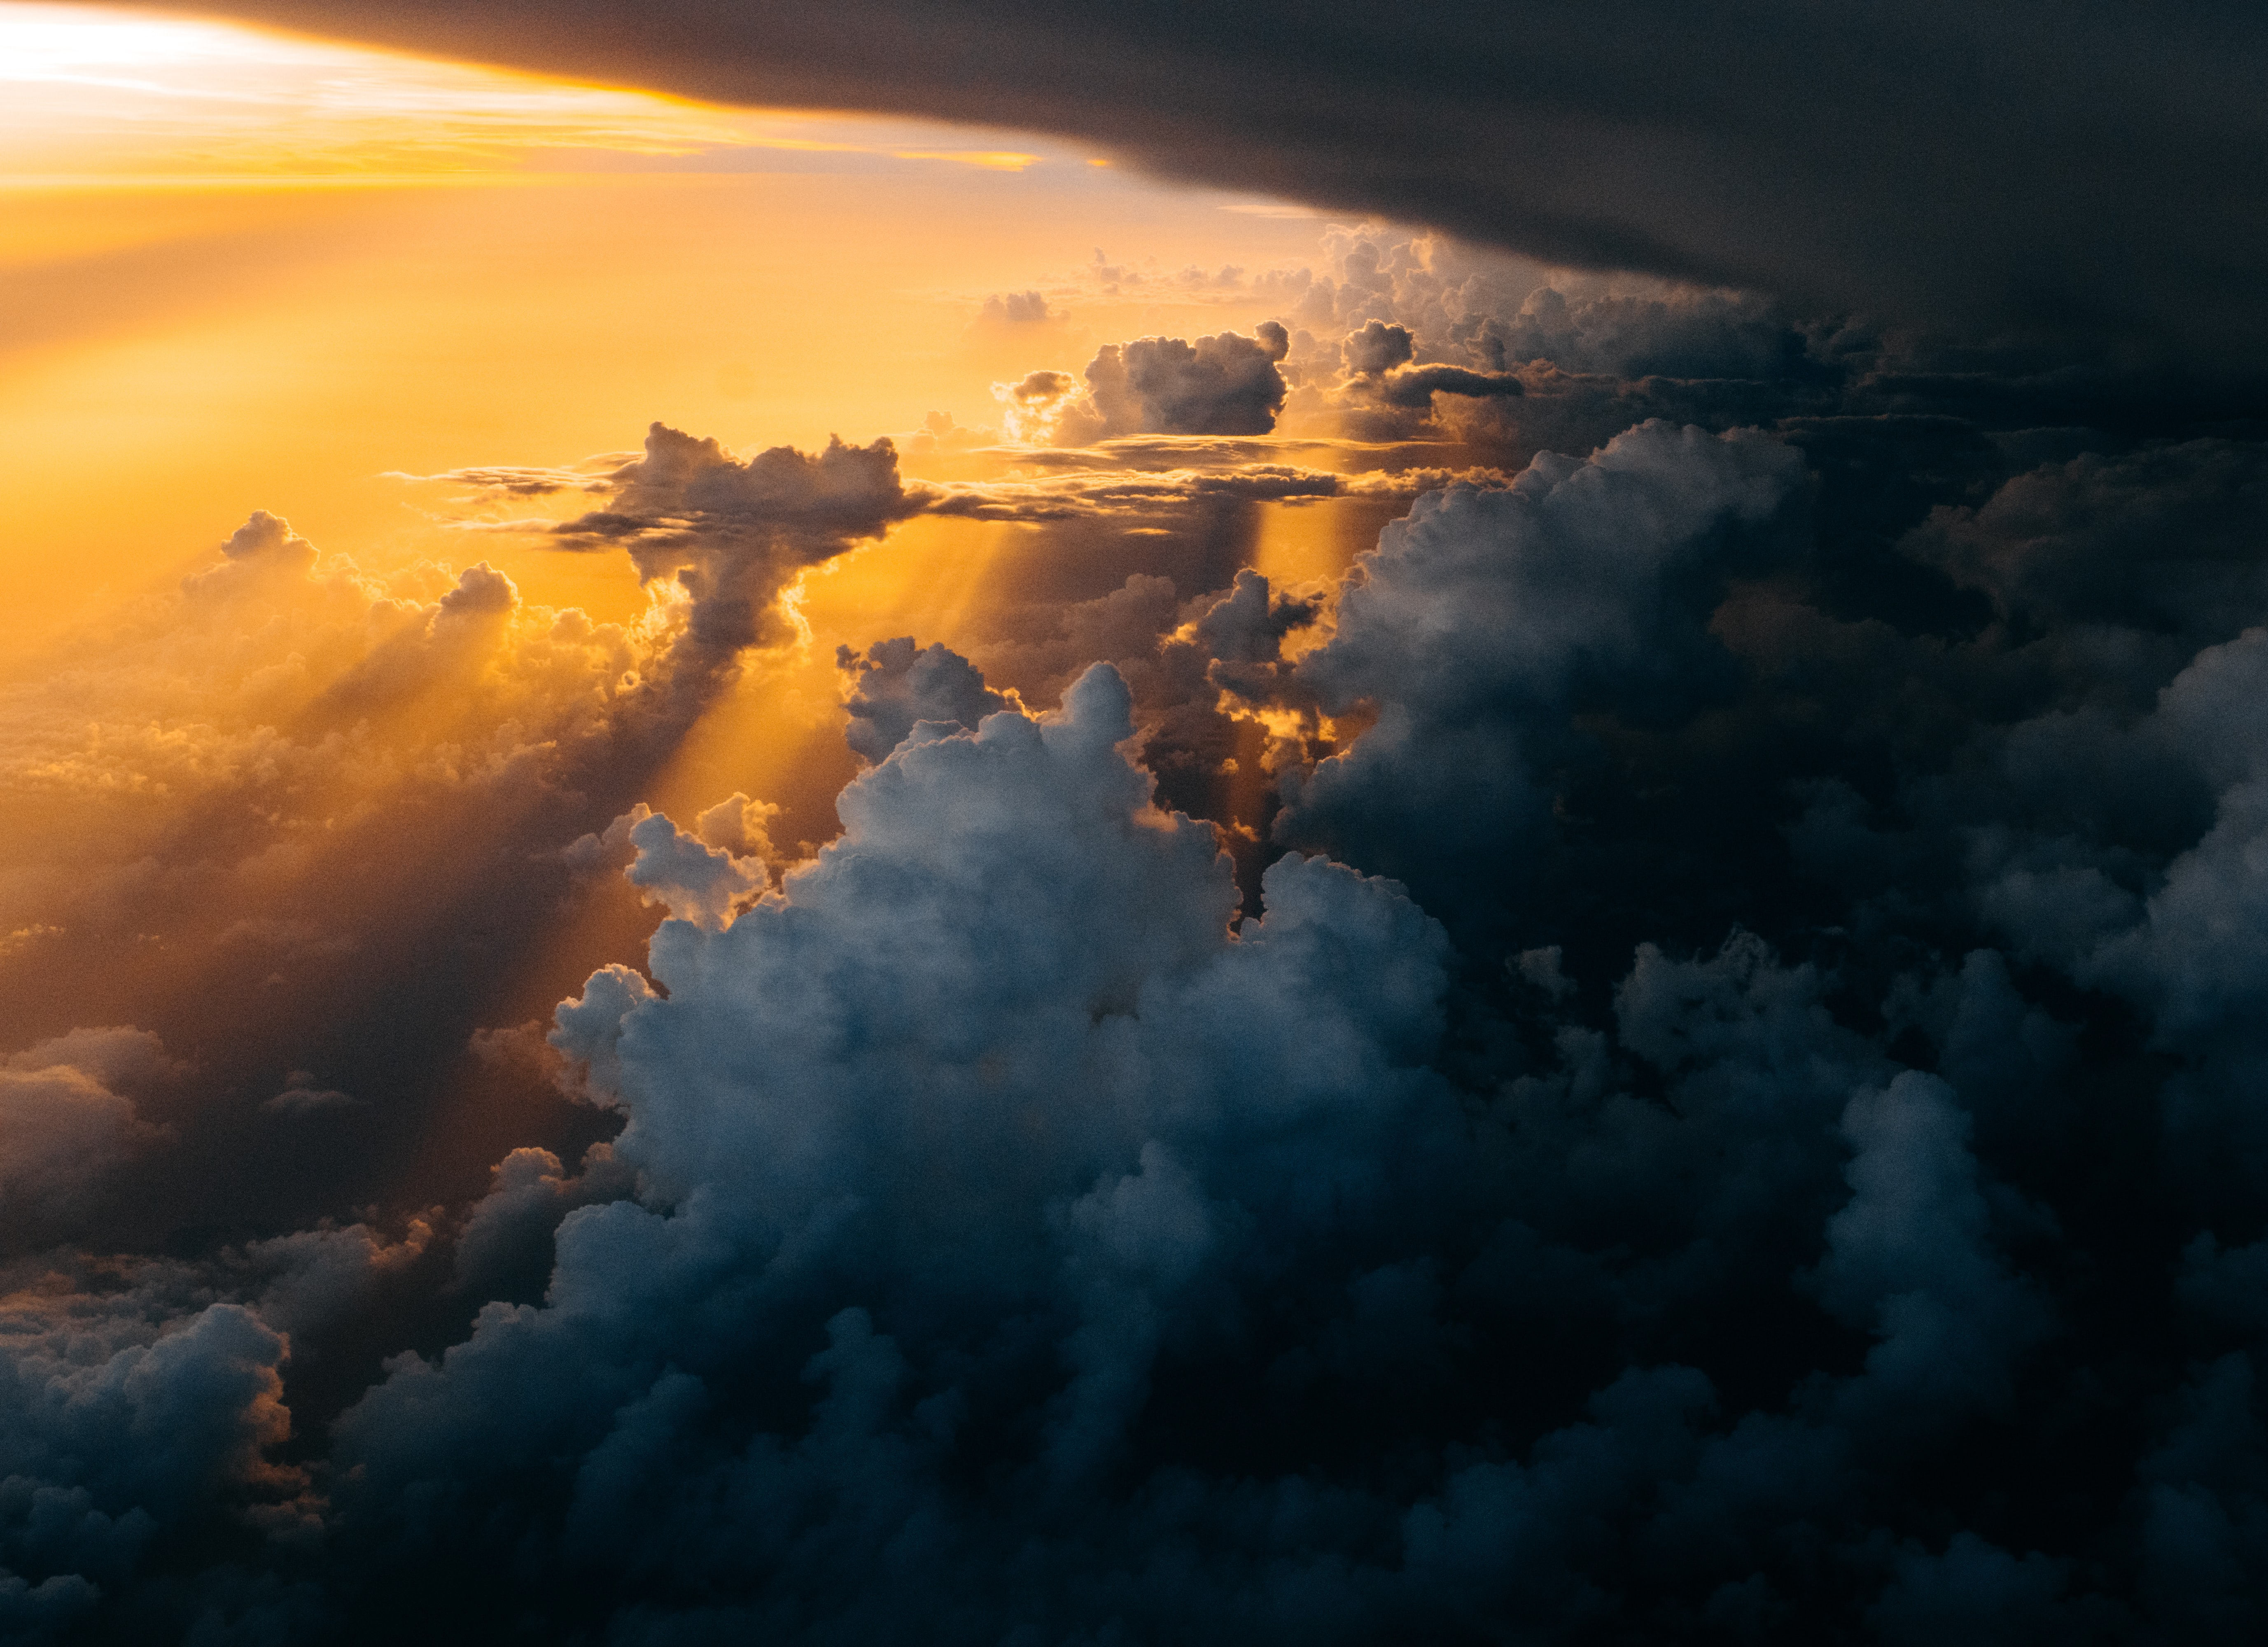 sunlight through clouds photography